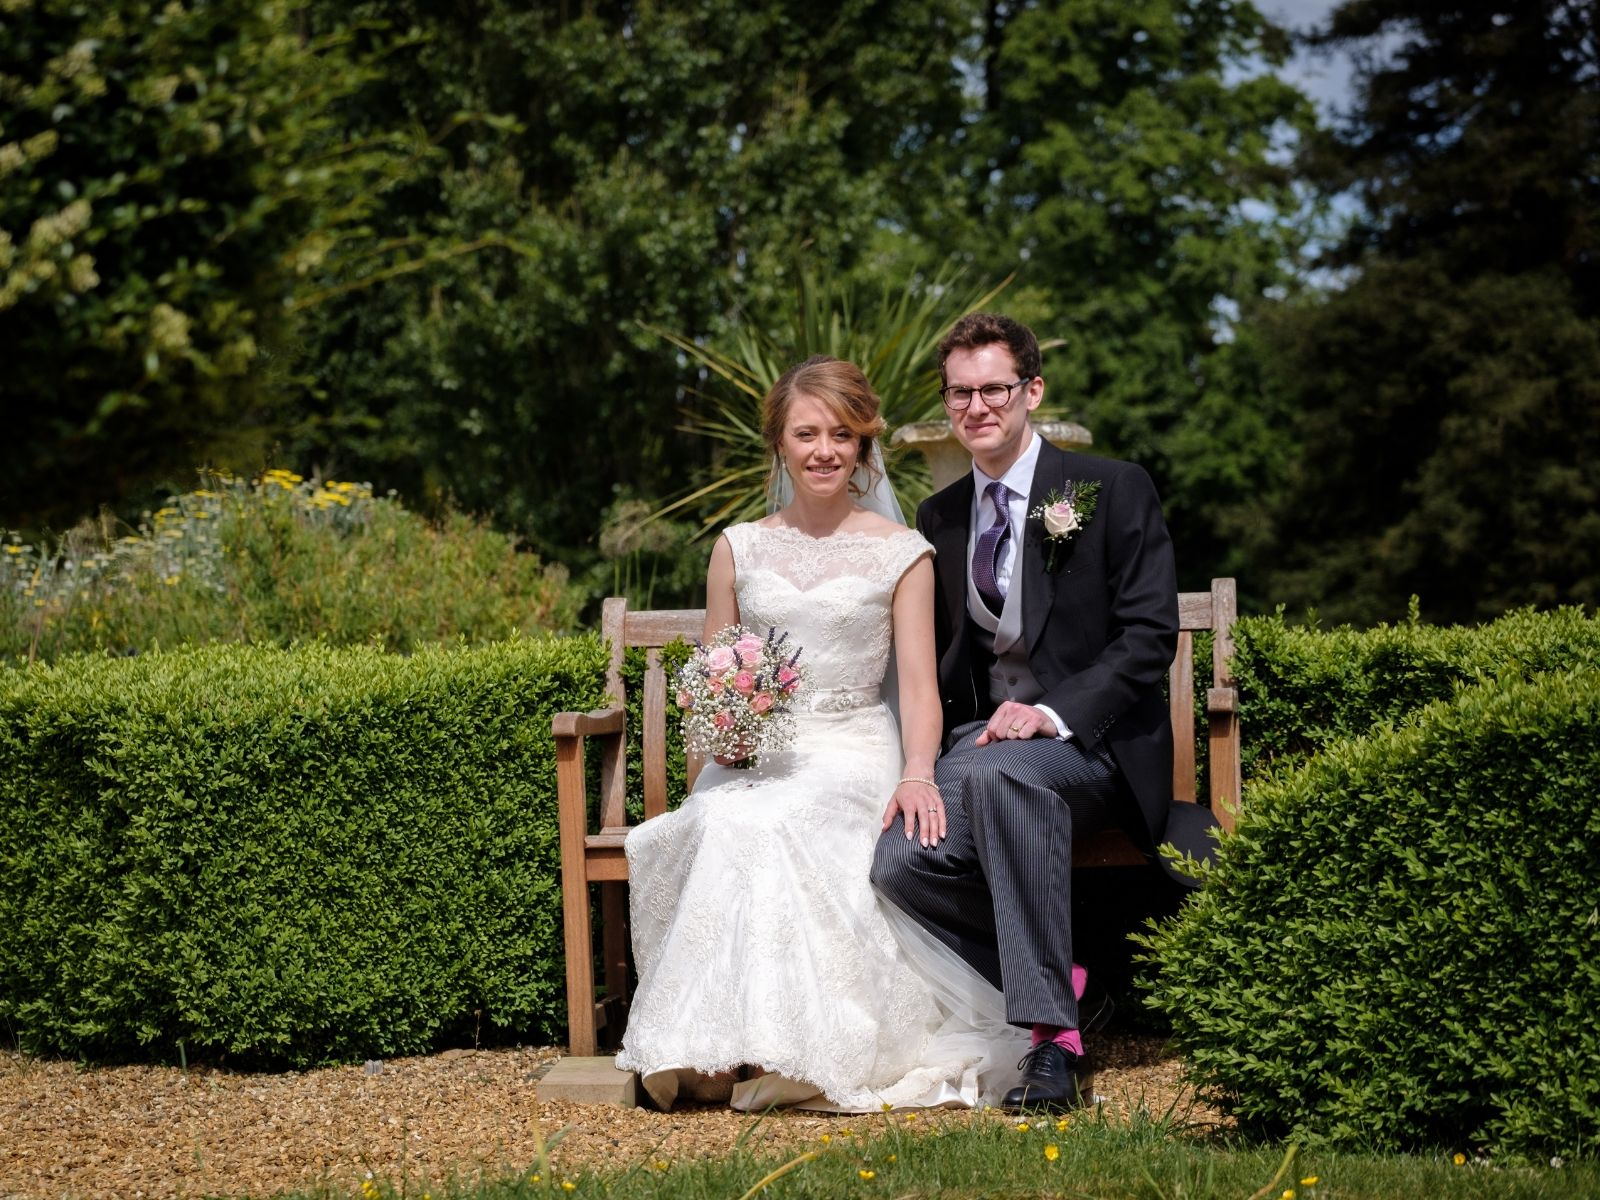 Wedding photography at traditional garden party wedding